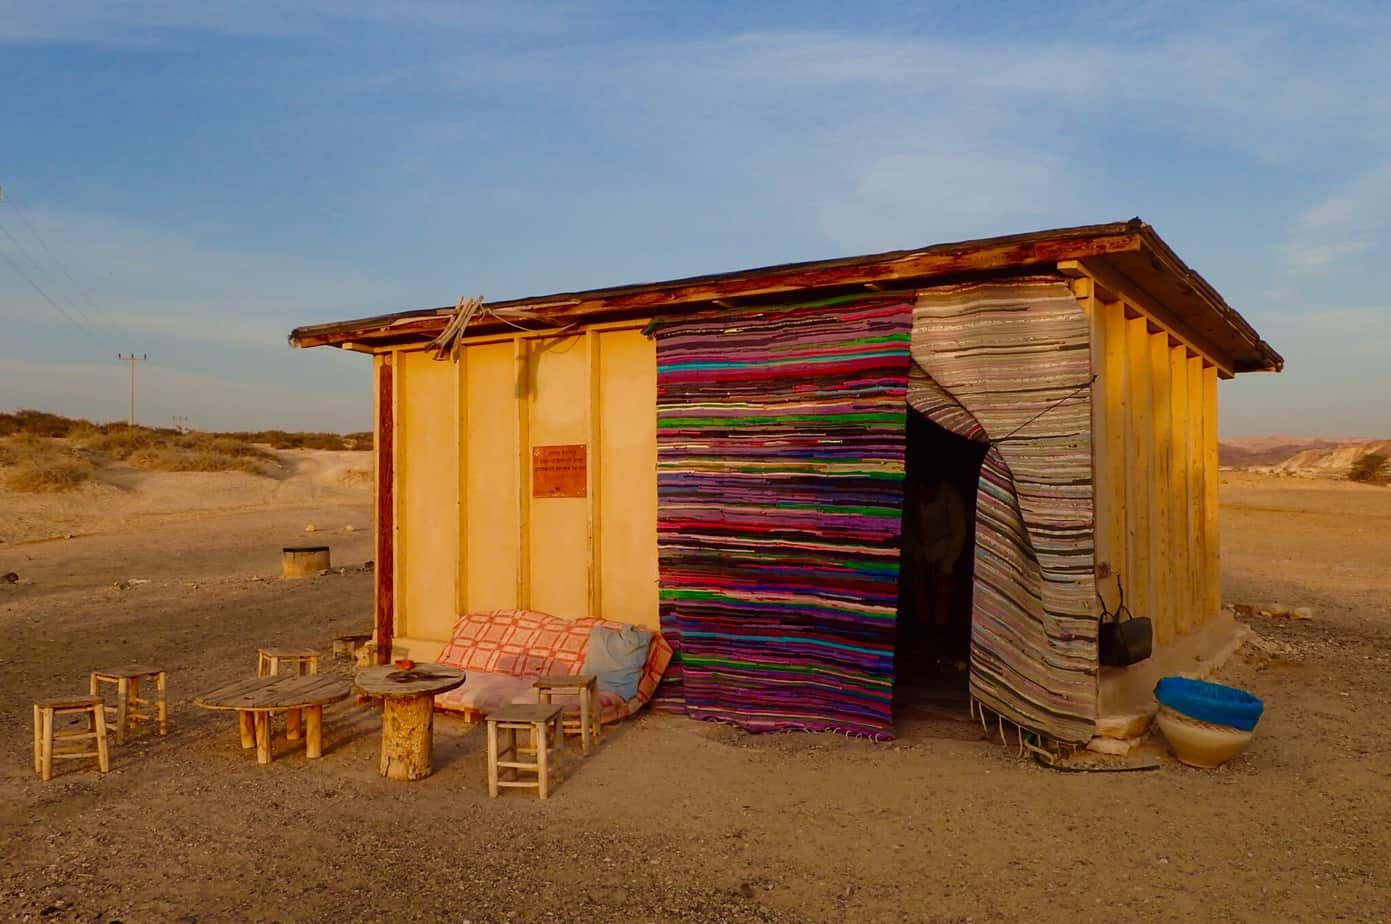 Bedouin tent, fun things to do in Israel